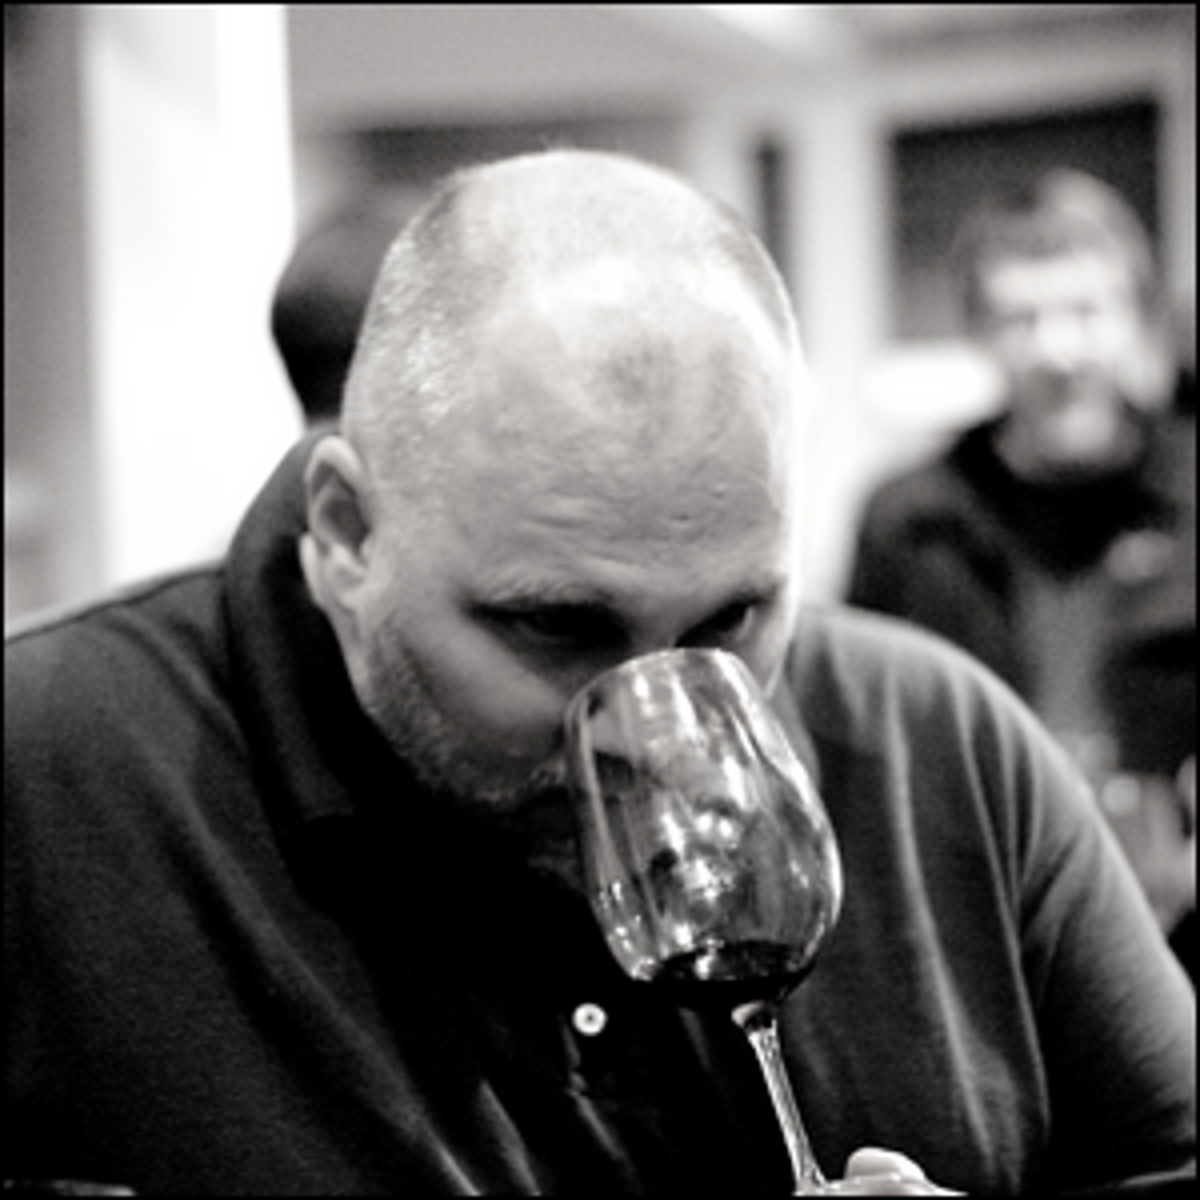 A man smelling the aroma and bouquet of wine in a glass as part of wine tasting.